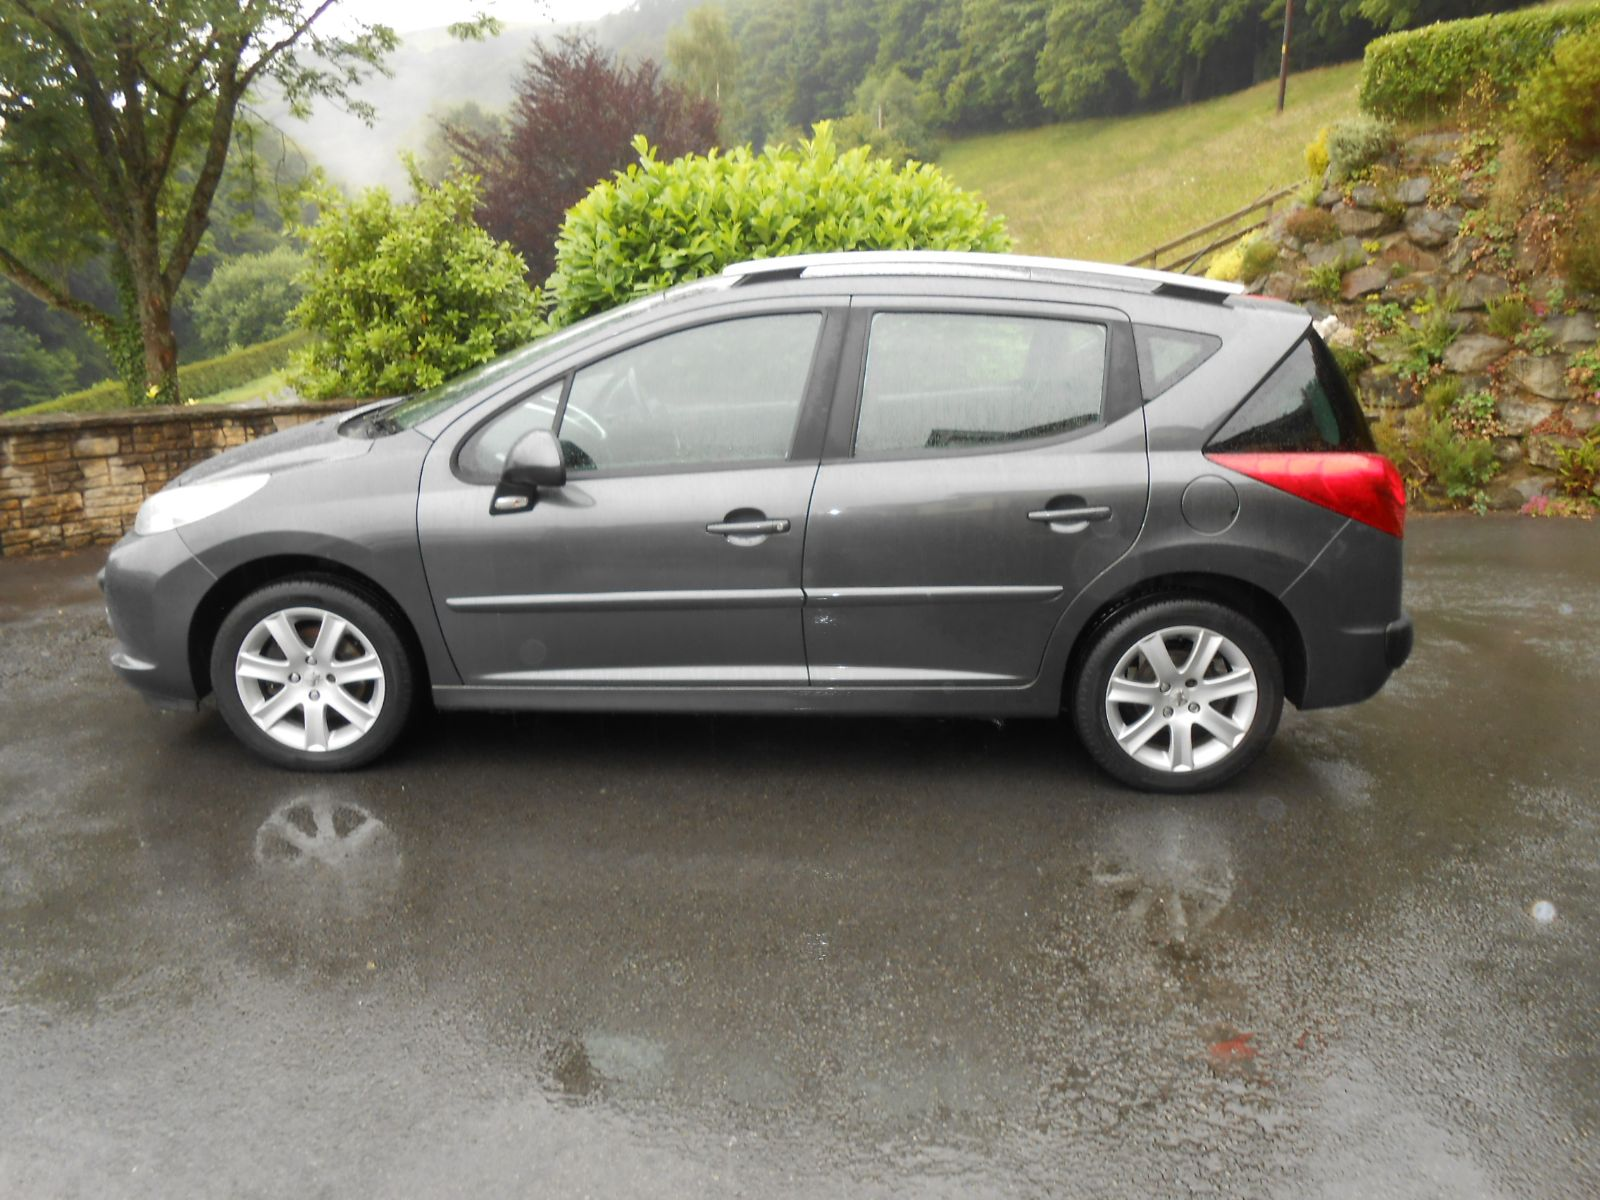 Peugeot 207 1.6 Sport SW car for sale Llanidloes Powys Mid Wales Kevin Jones Cars - Used cars ...